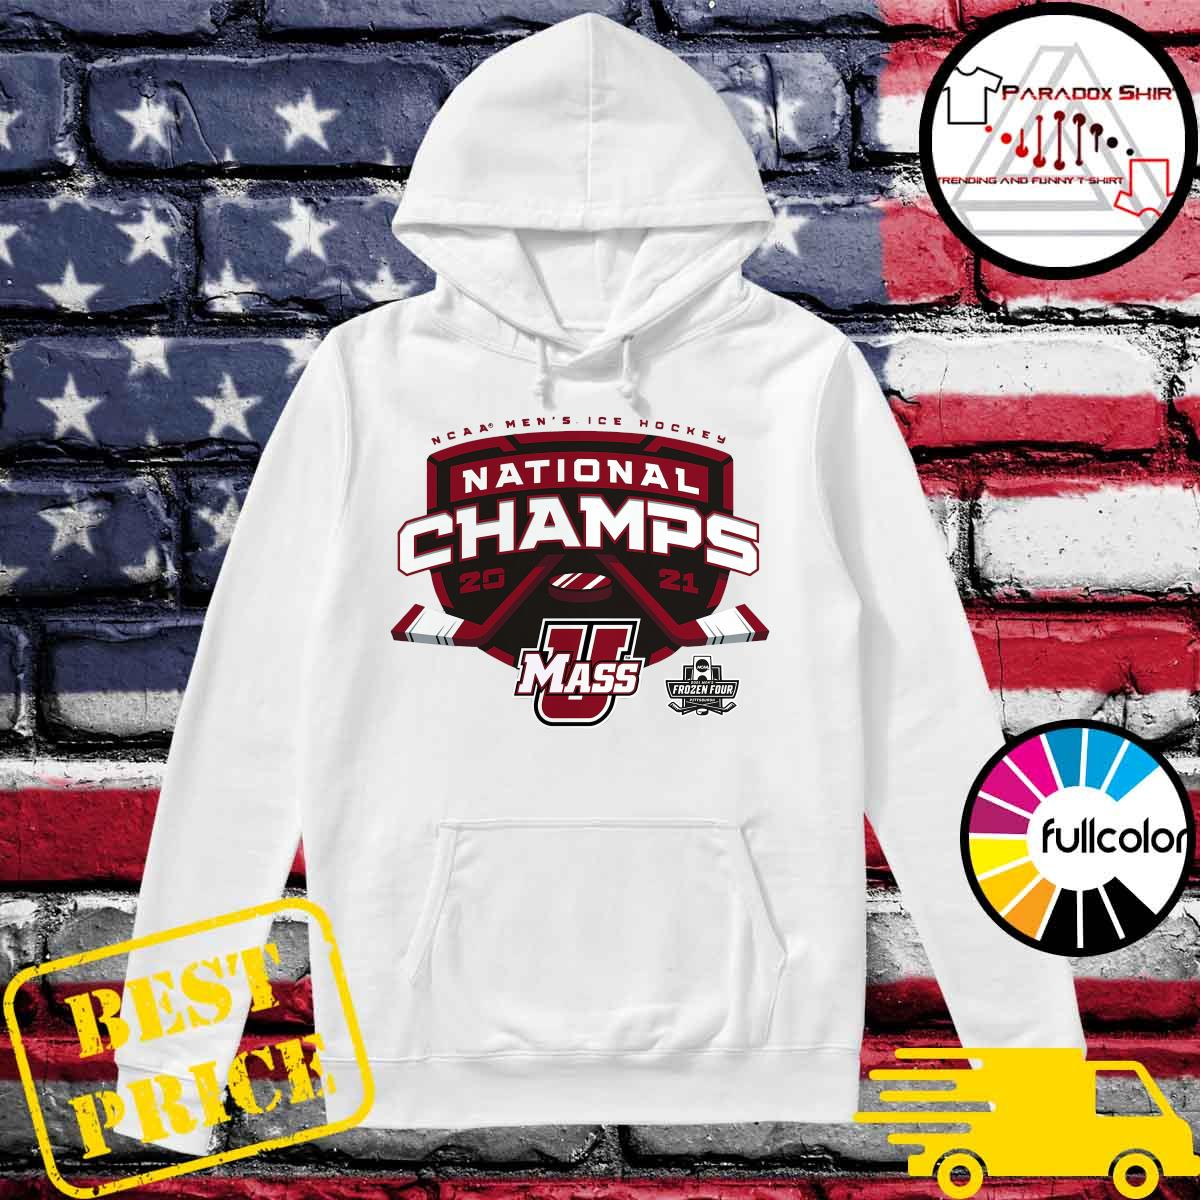 Official UMass Minutemen 2021 NCAA Men's Ice Hockey National Champions T-Shirt Hoodie